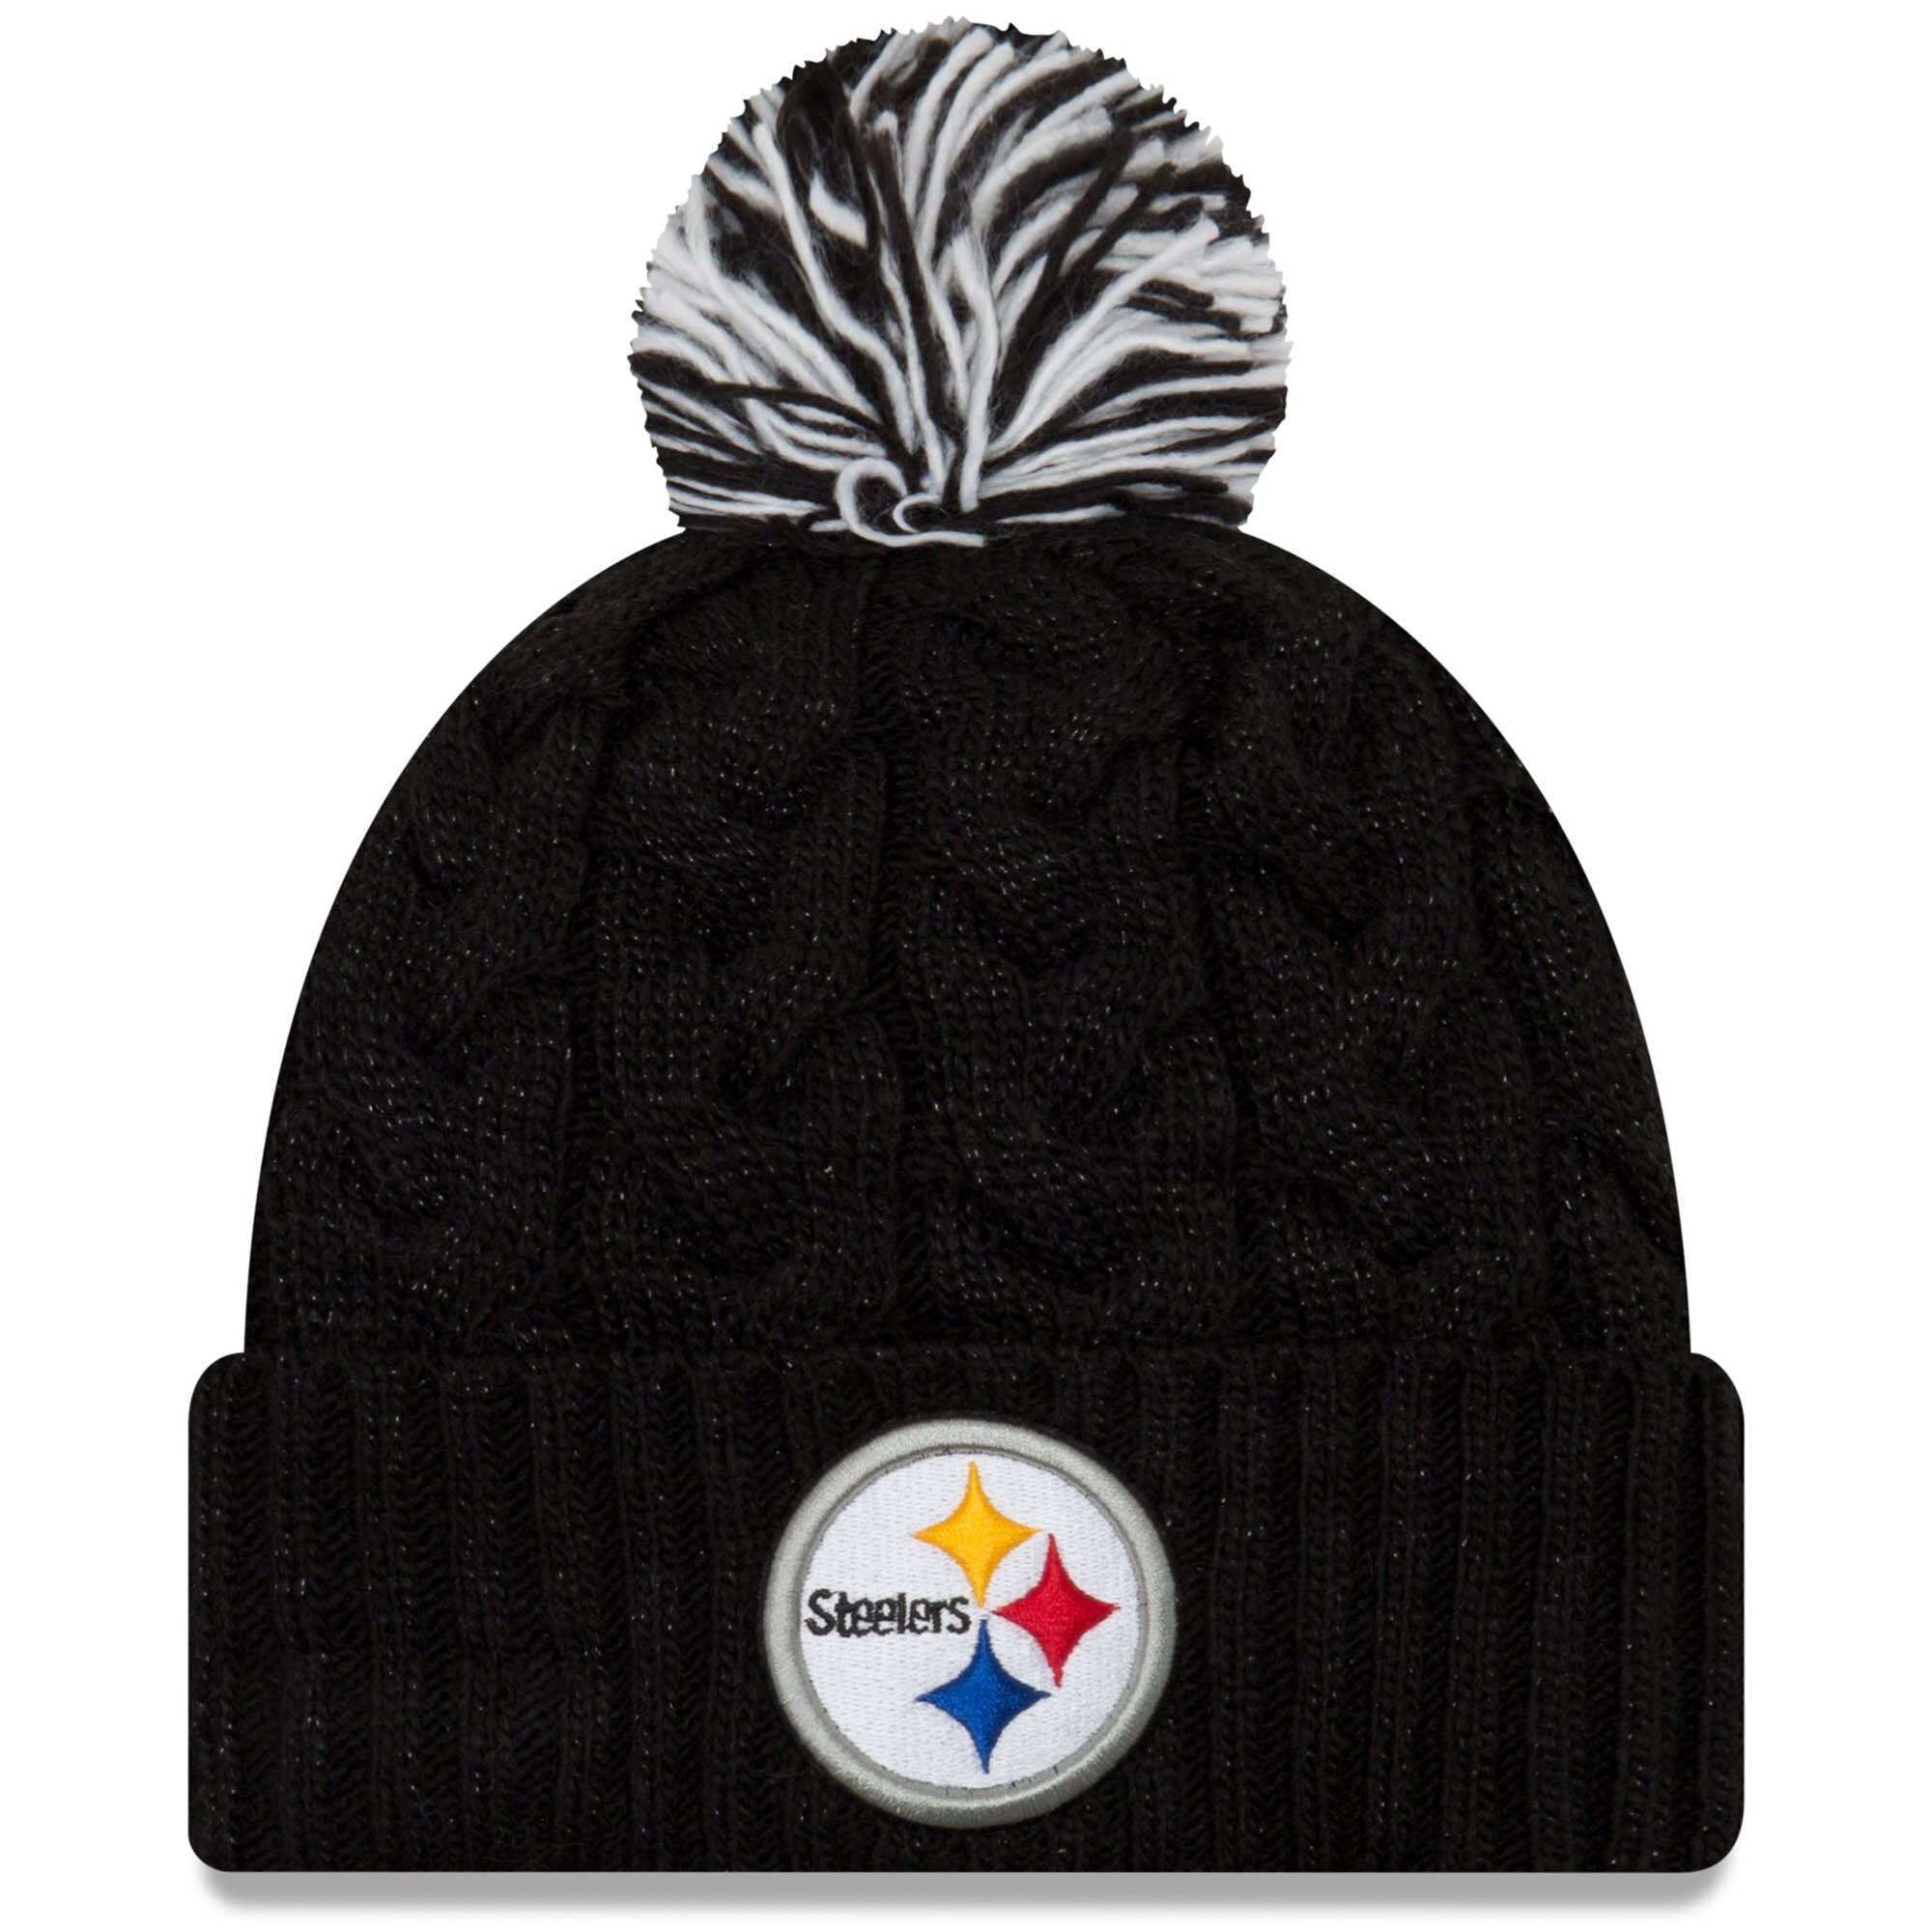 Pittsburgh Steelers New Era Women's Cozy Cable Cuffed Knit Hat - Black